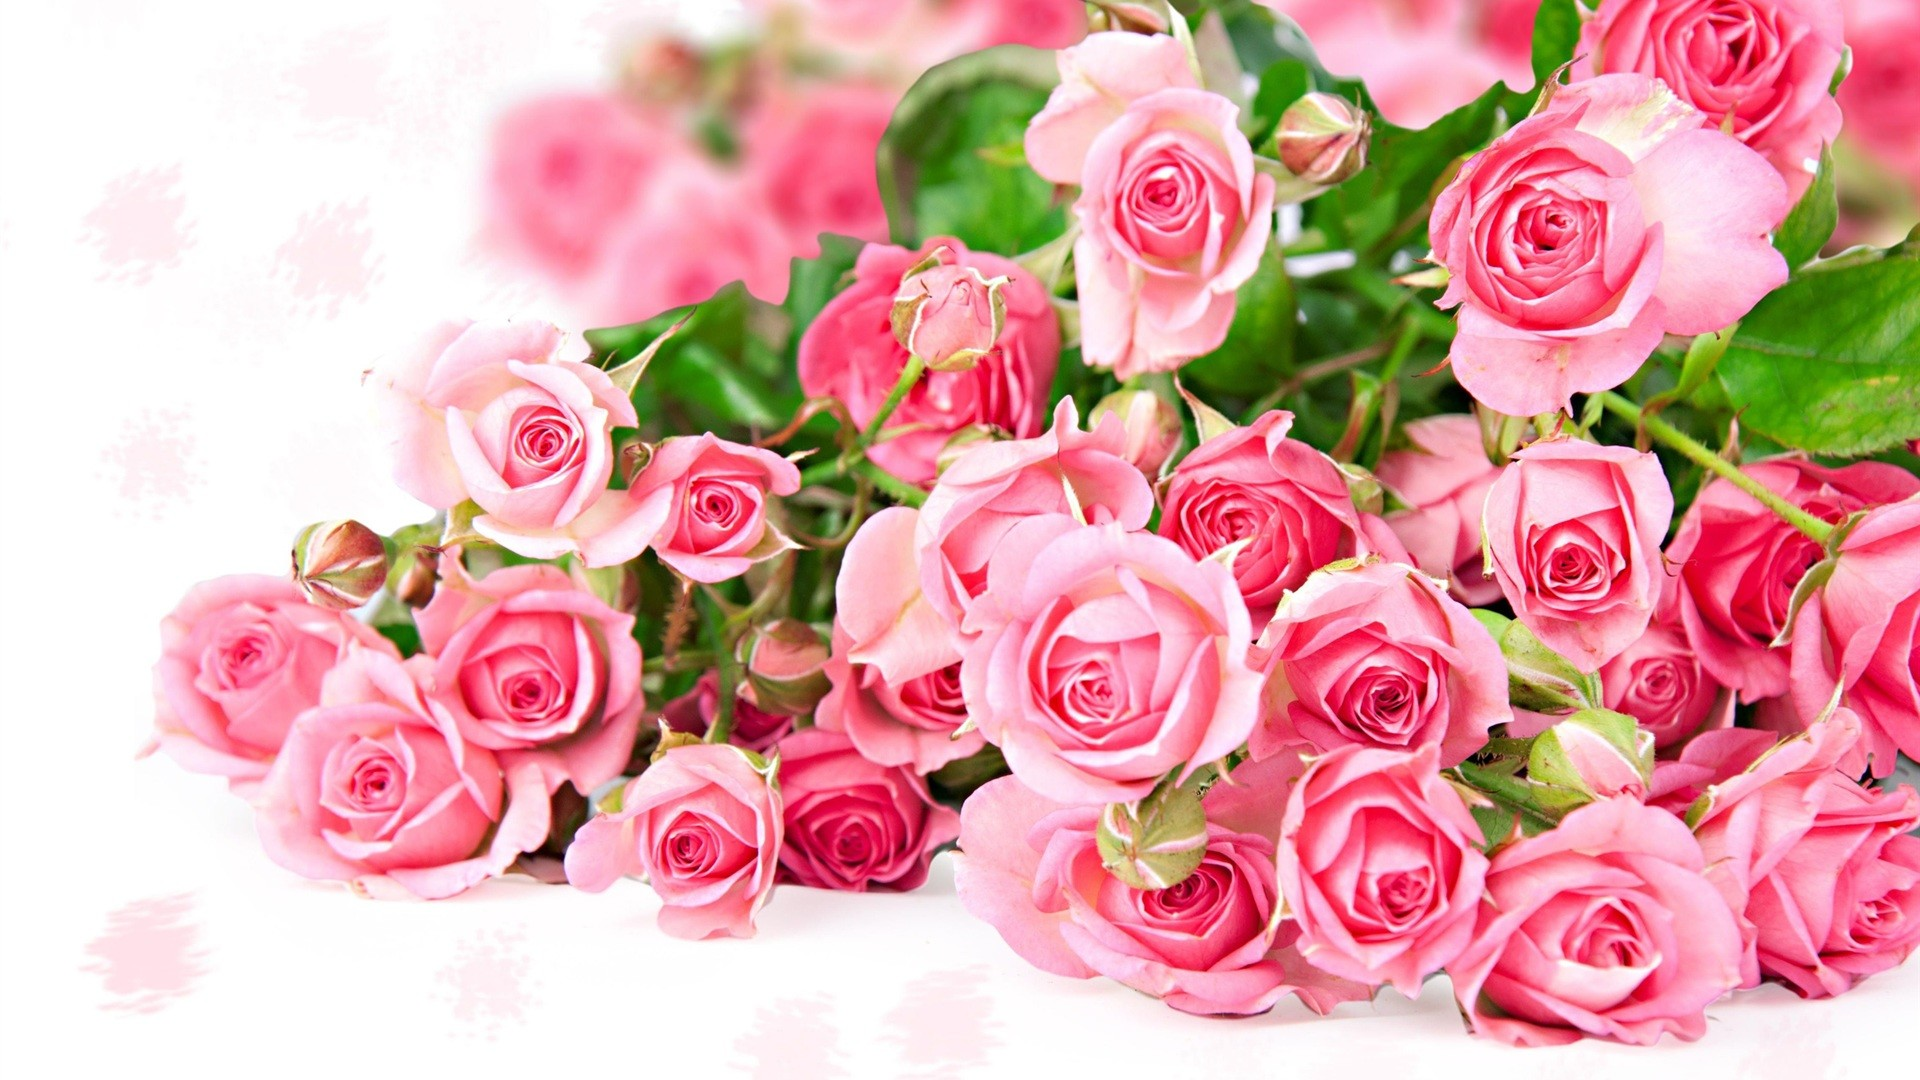 Res: 1920x1080, pink rose for rose day wallpapers. Flowers Wallpapers For Mobile